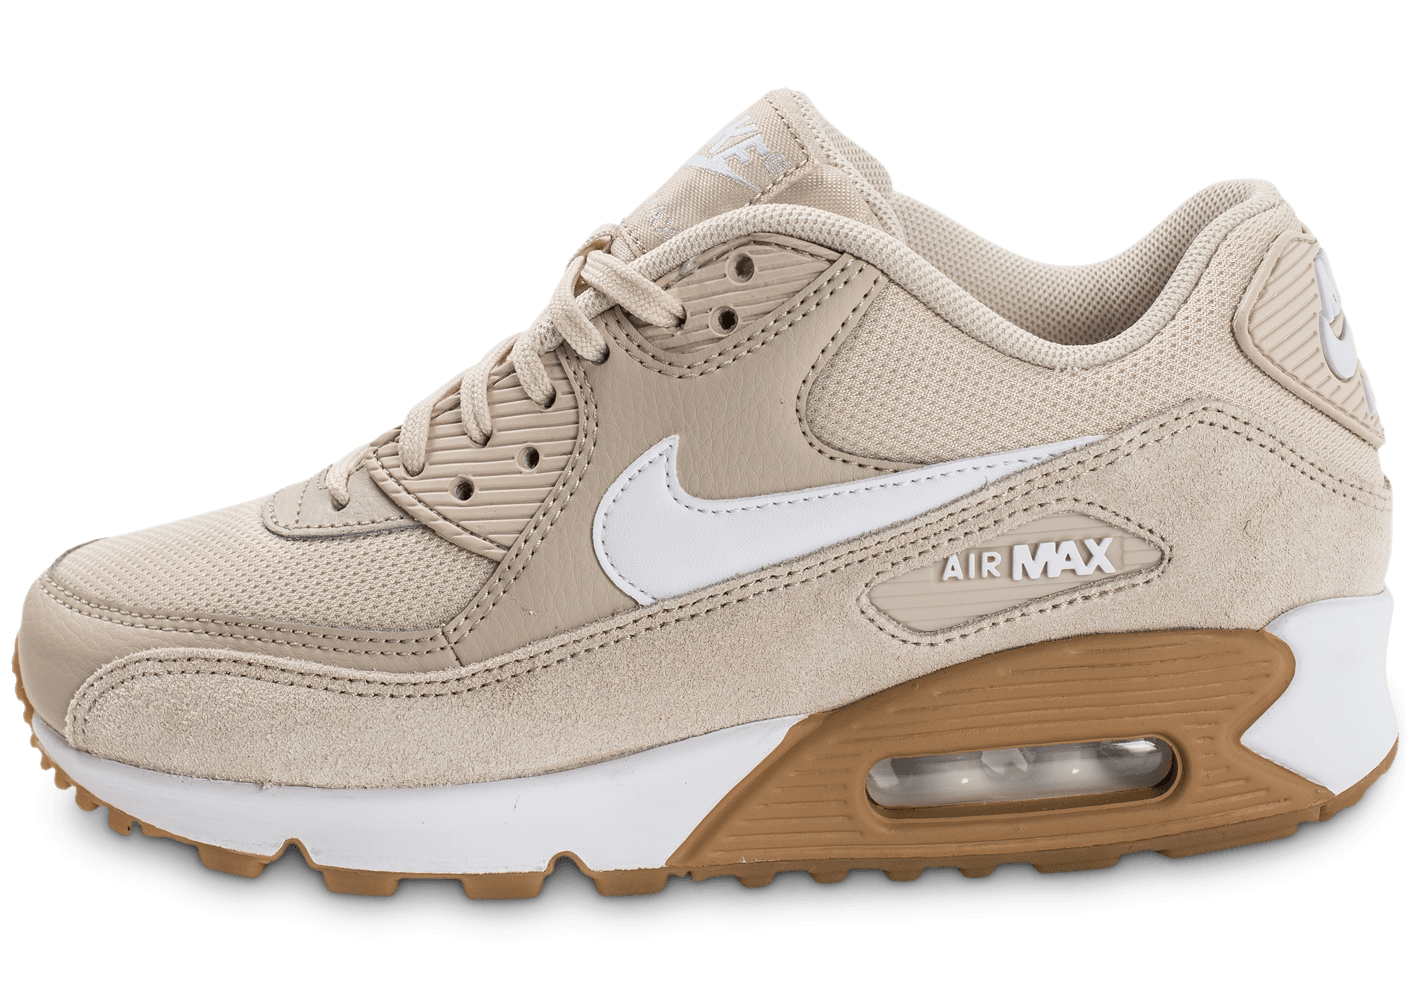 nike air max 90 w beige chaussures femme chausport. Black Bedroom Furniture Sets. Home Design Ideas